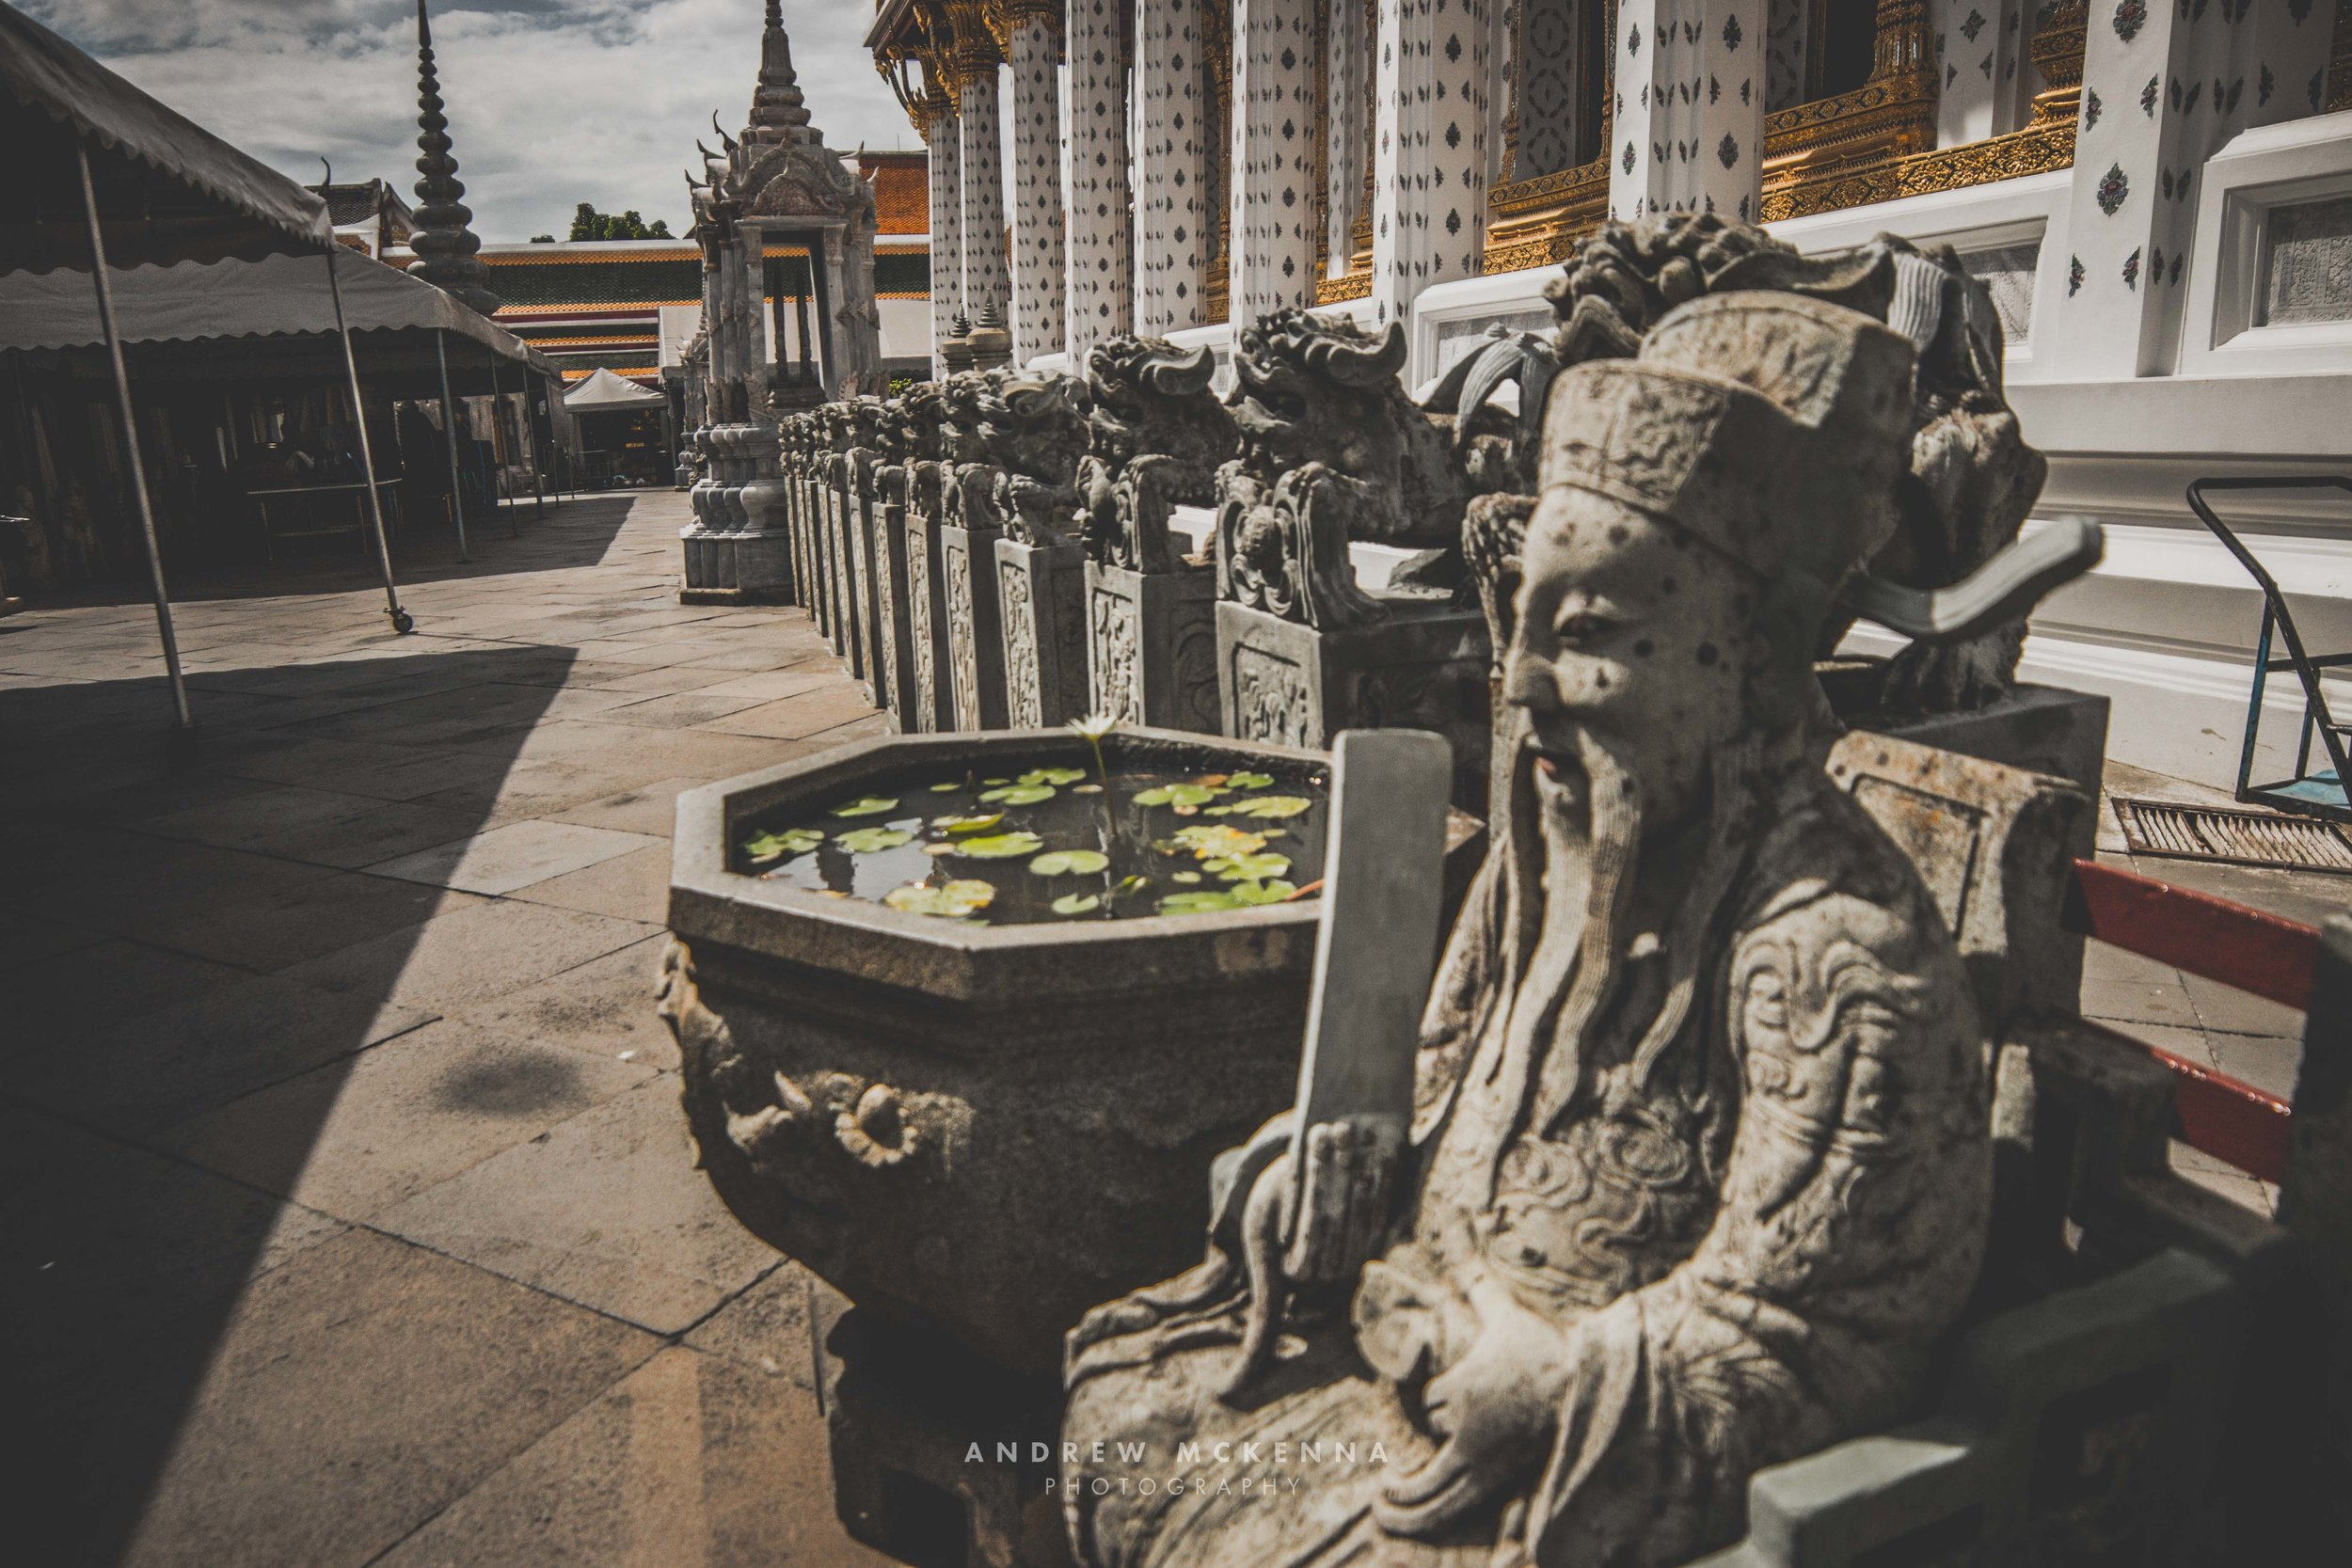 Wat Arun Temple Bangkok. Thailand, Photography by Andrew McKenna.